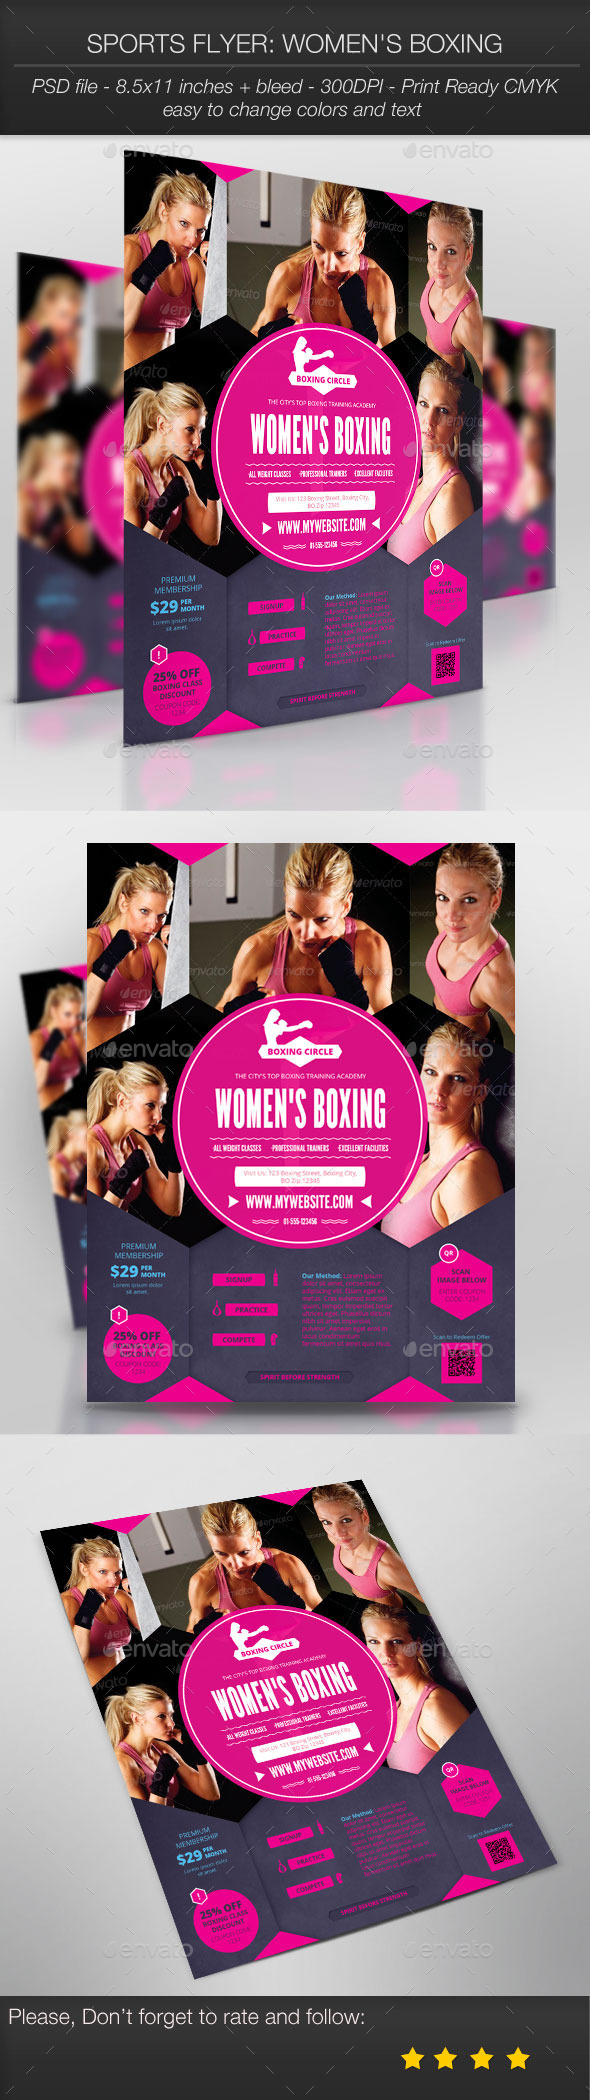 Sports Flyer: Women's Boxing - Sports Events